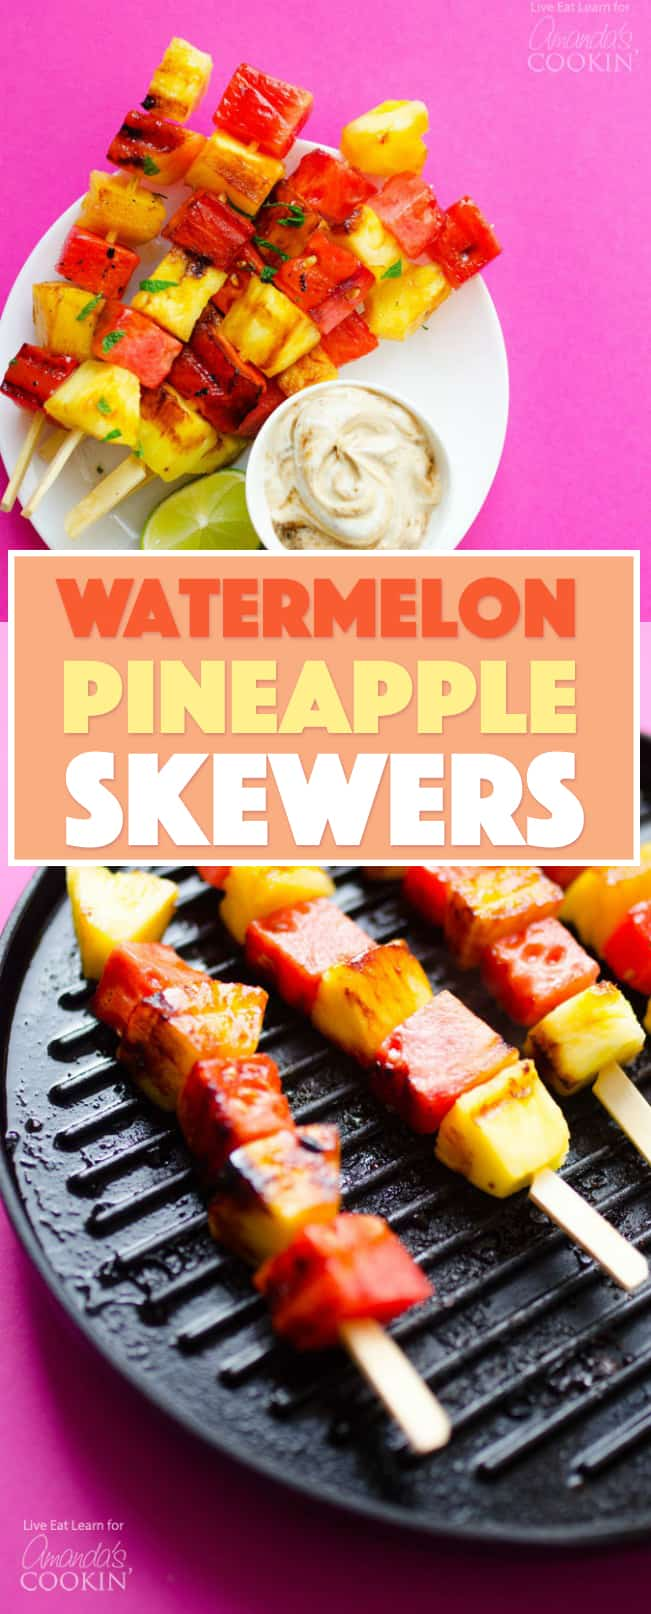 Got the grill fired up and looking for a quick dessert? These Grilled Watermelon Pineapple Skewers have just 4 easy ingredients and are dipped in the most deliciously simple yogurt sauce!